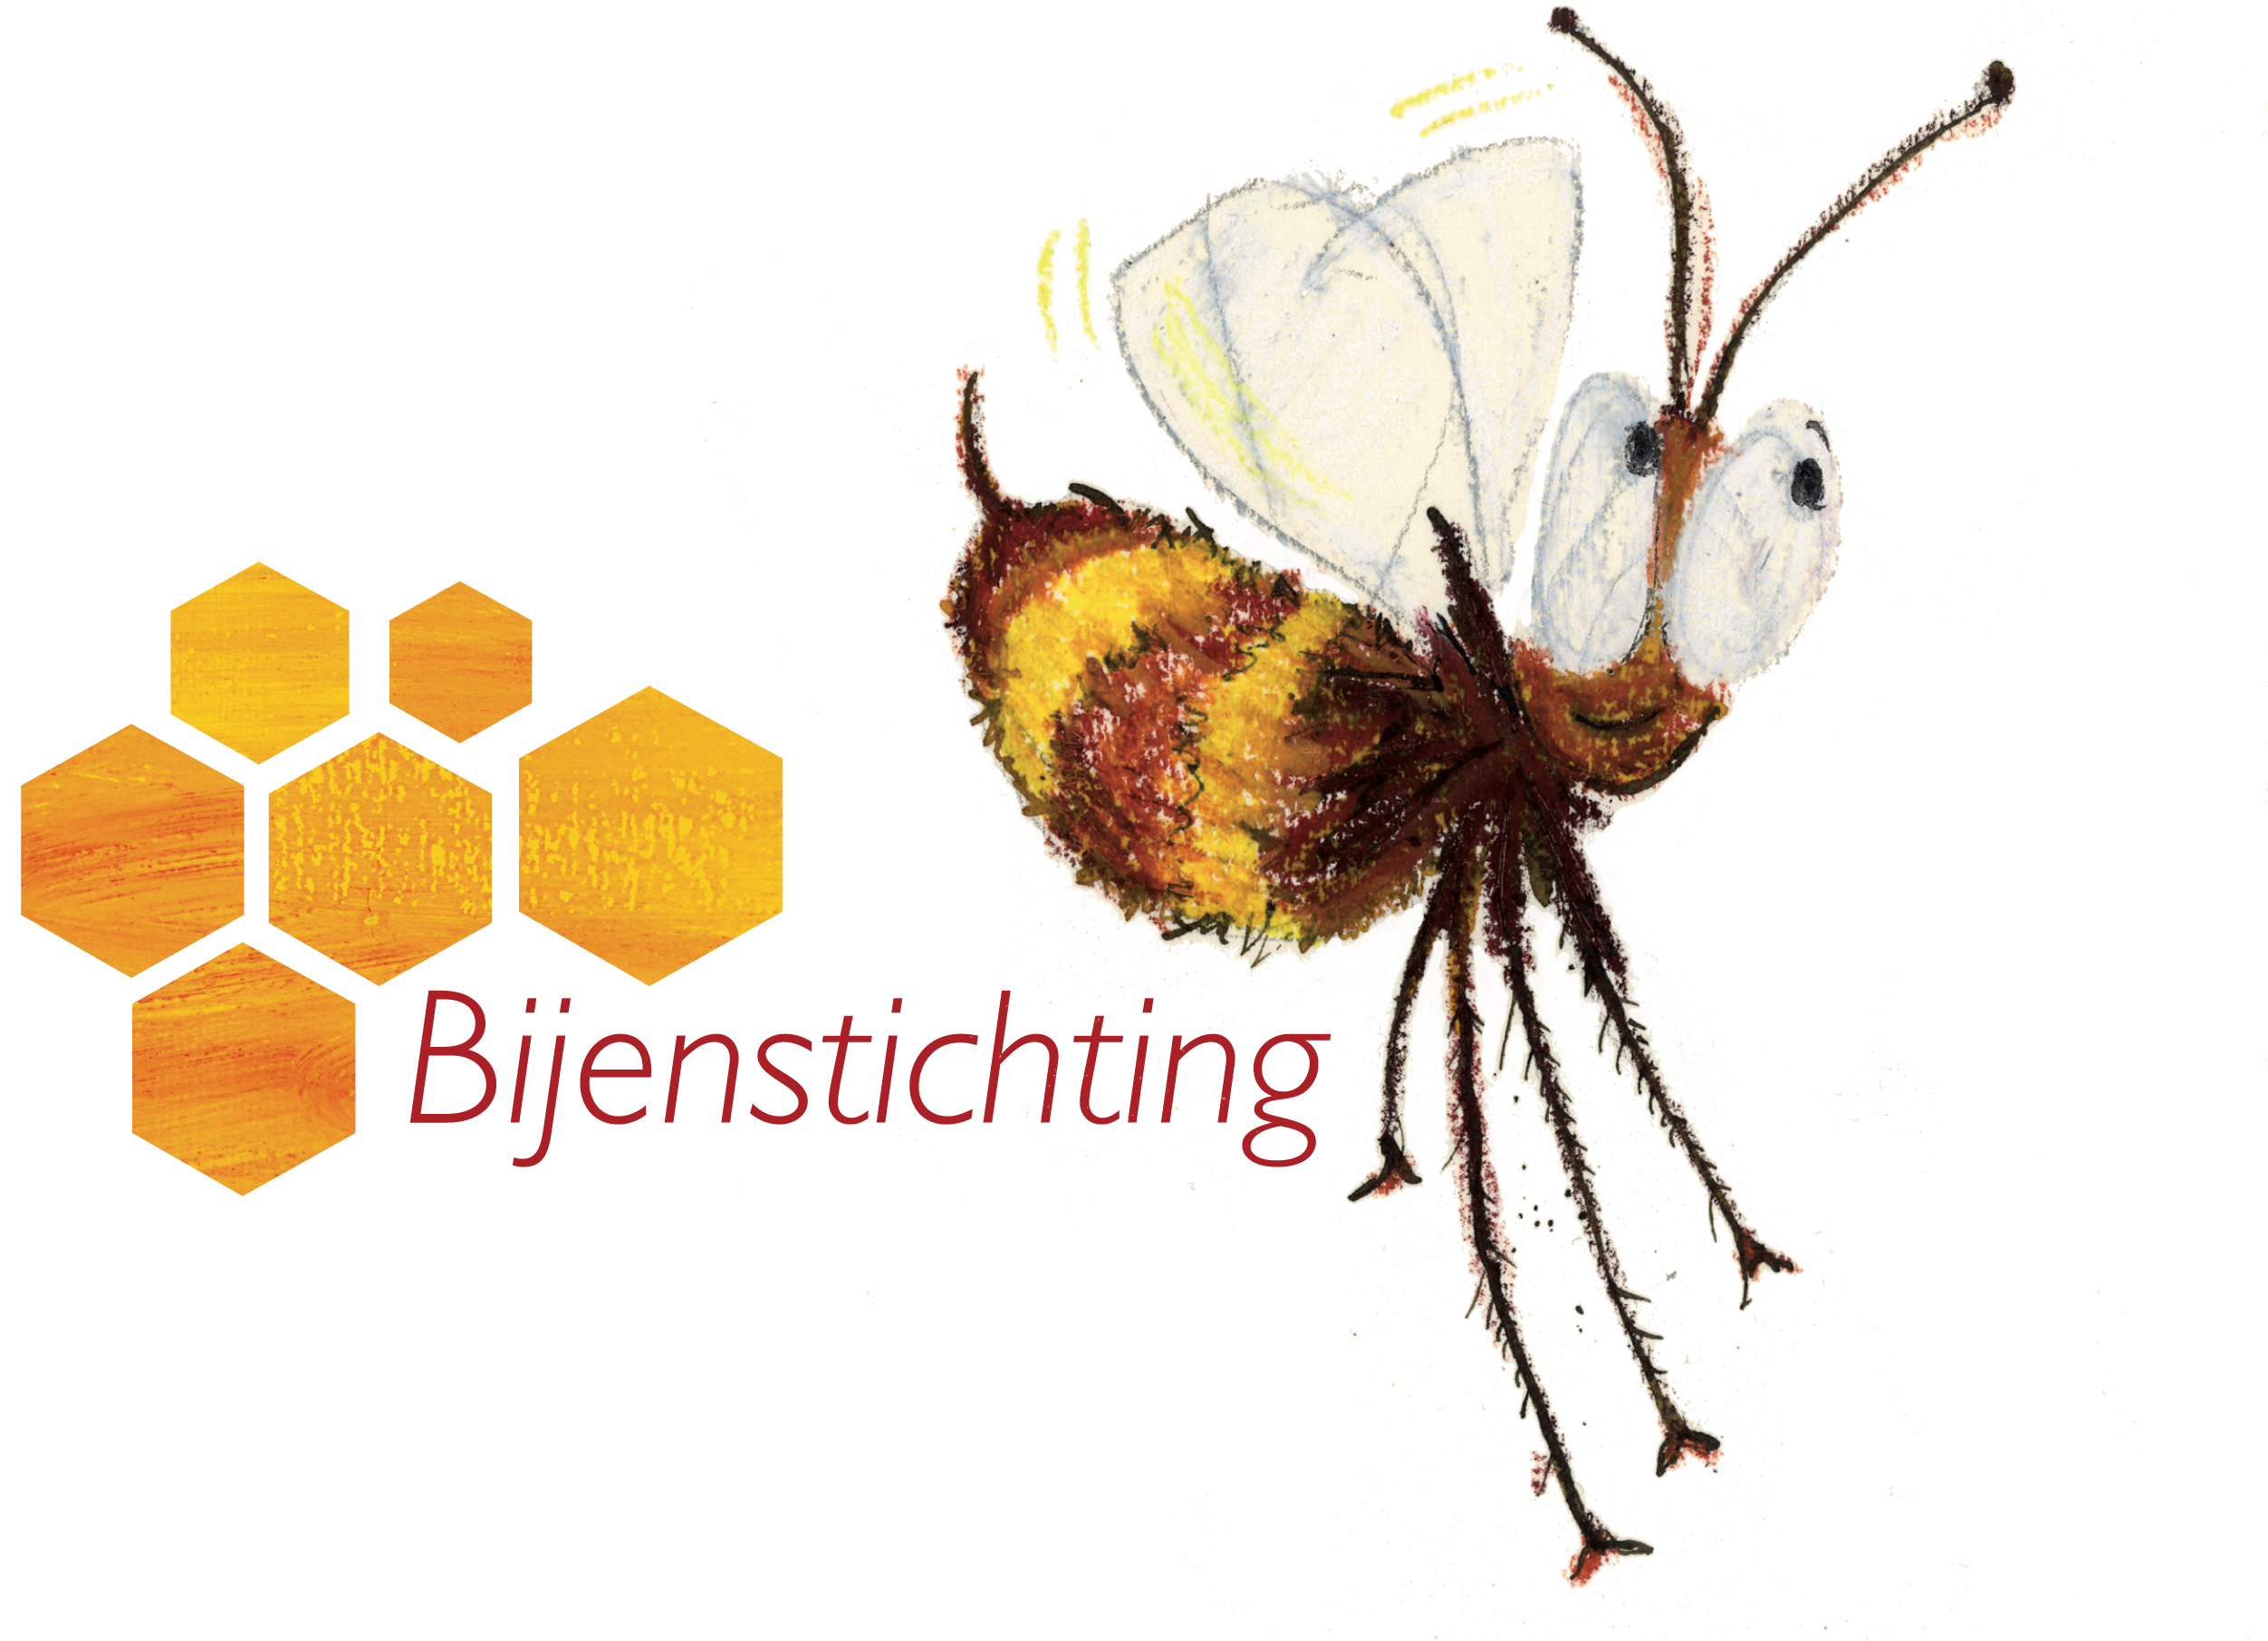 De Bijenstichting